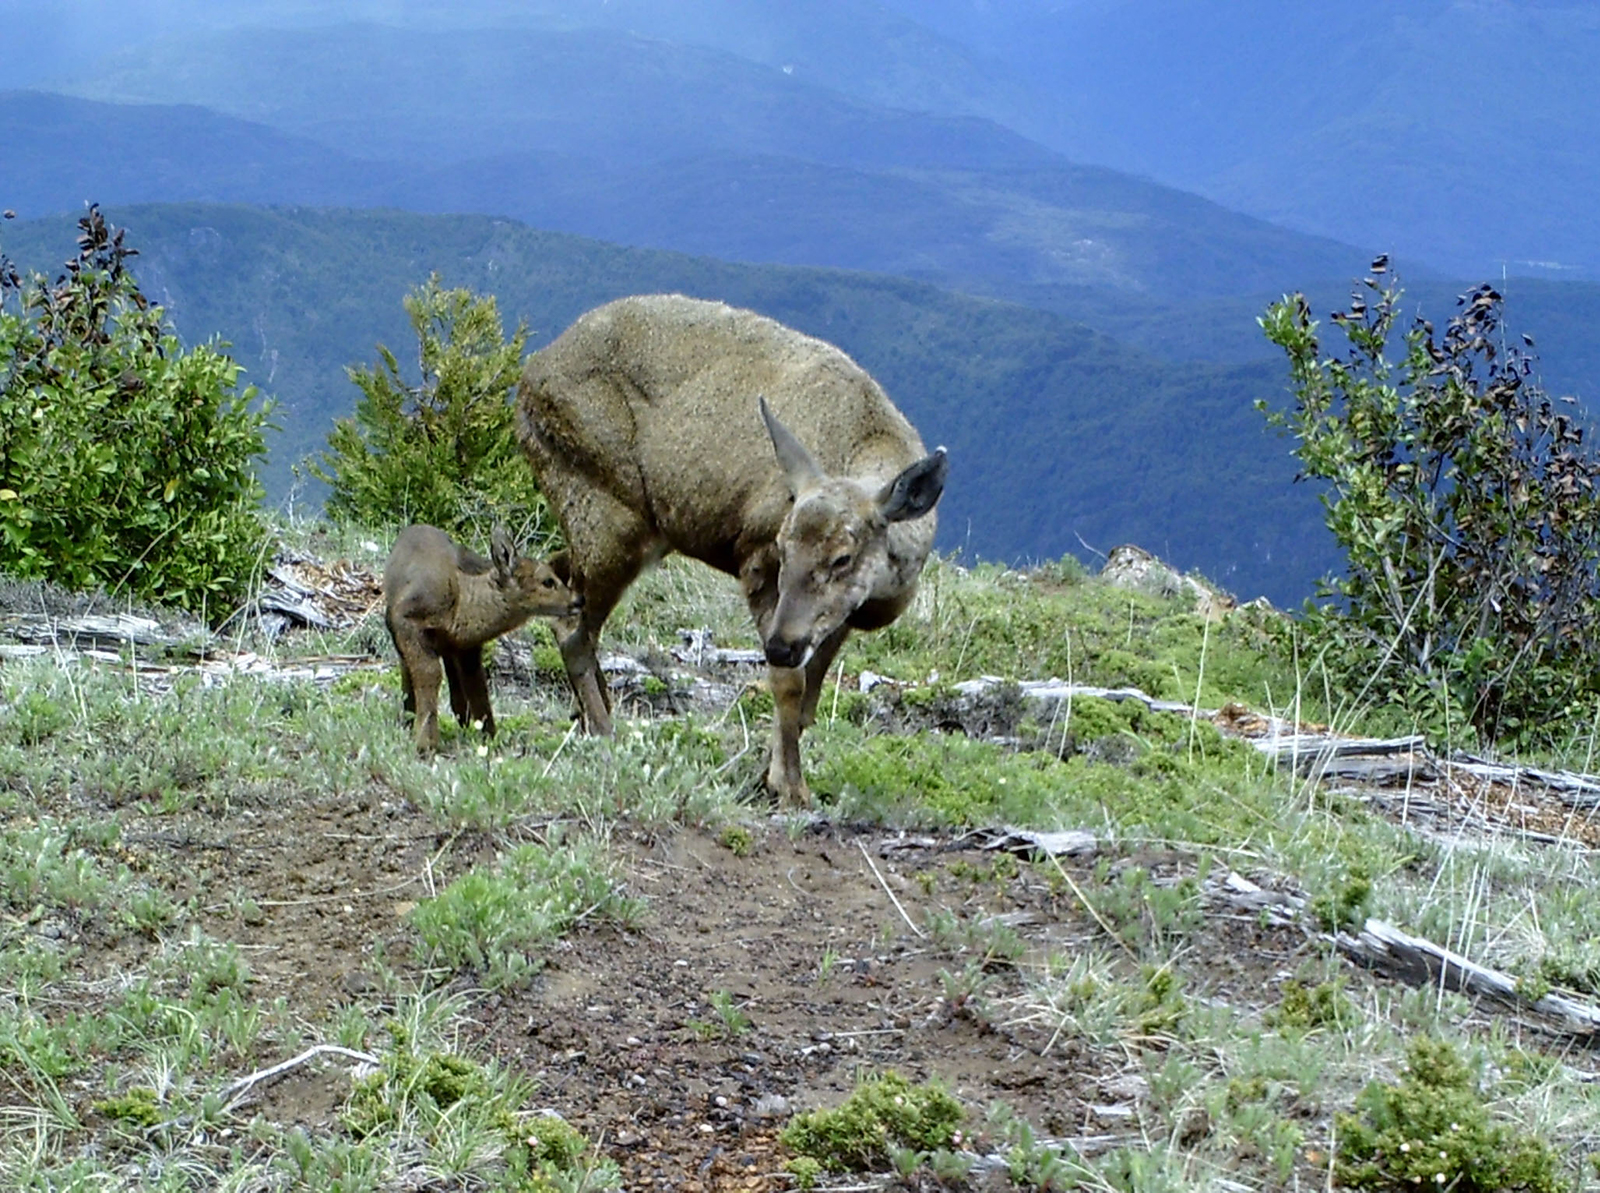 Found in both Chile and Argentina, the huemul is increasingly restricted to remote sectors that are difficult to access. Photo: National Geographic Society